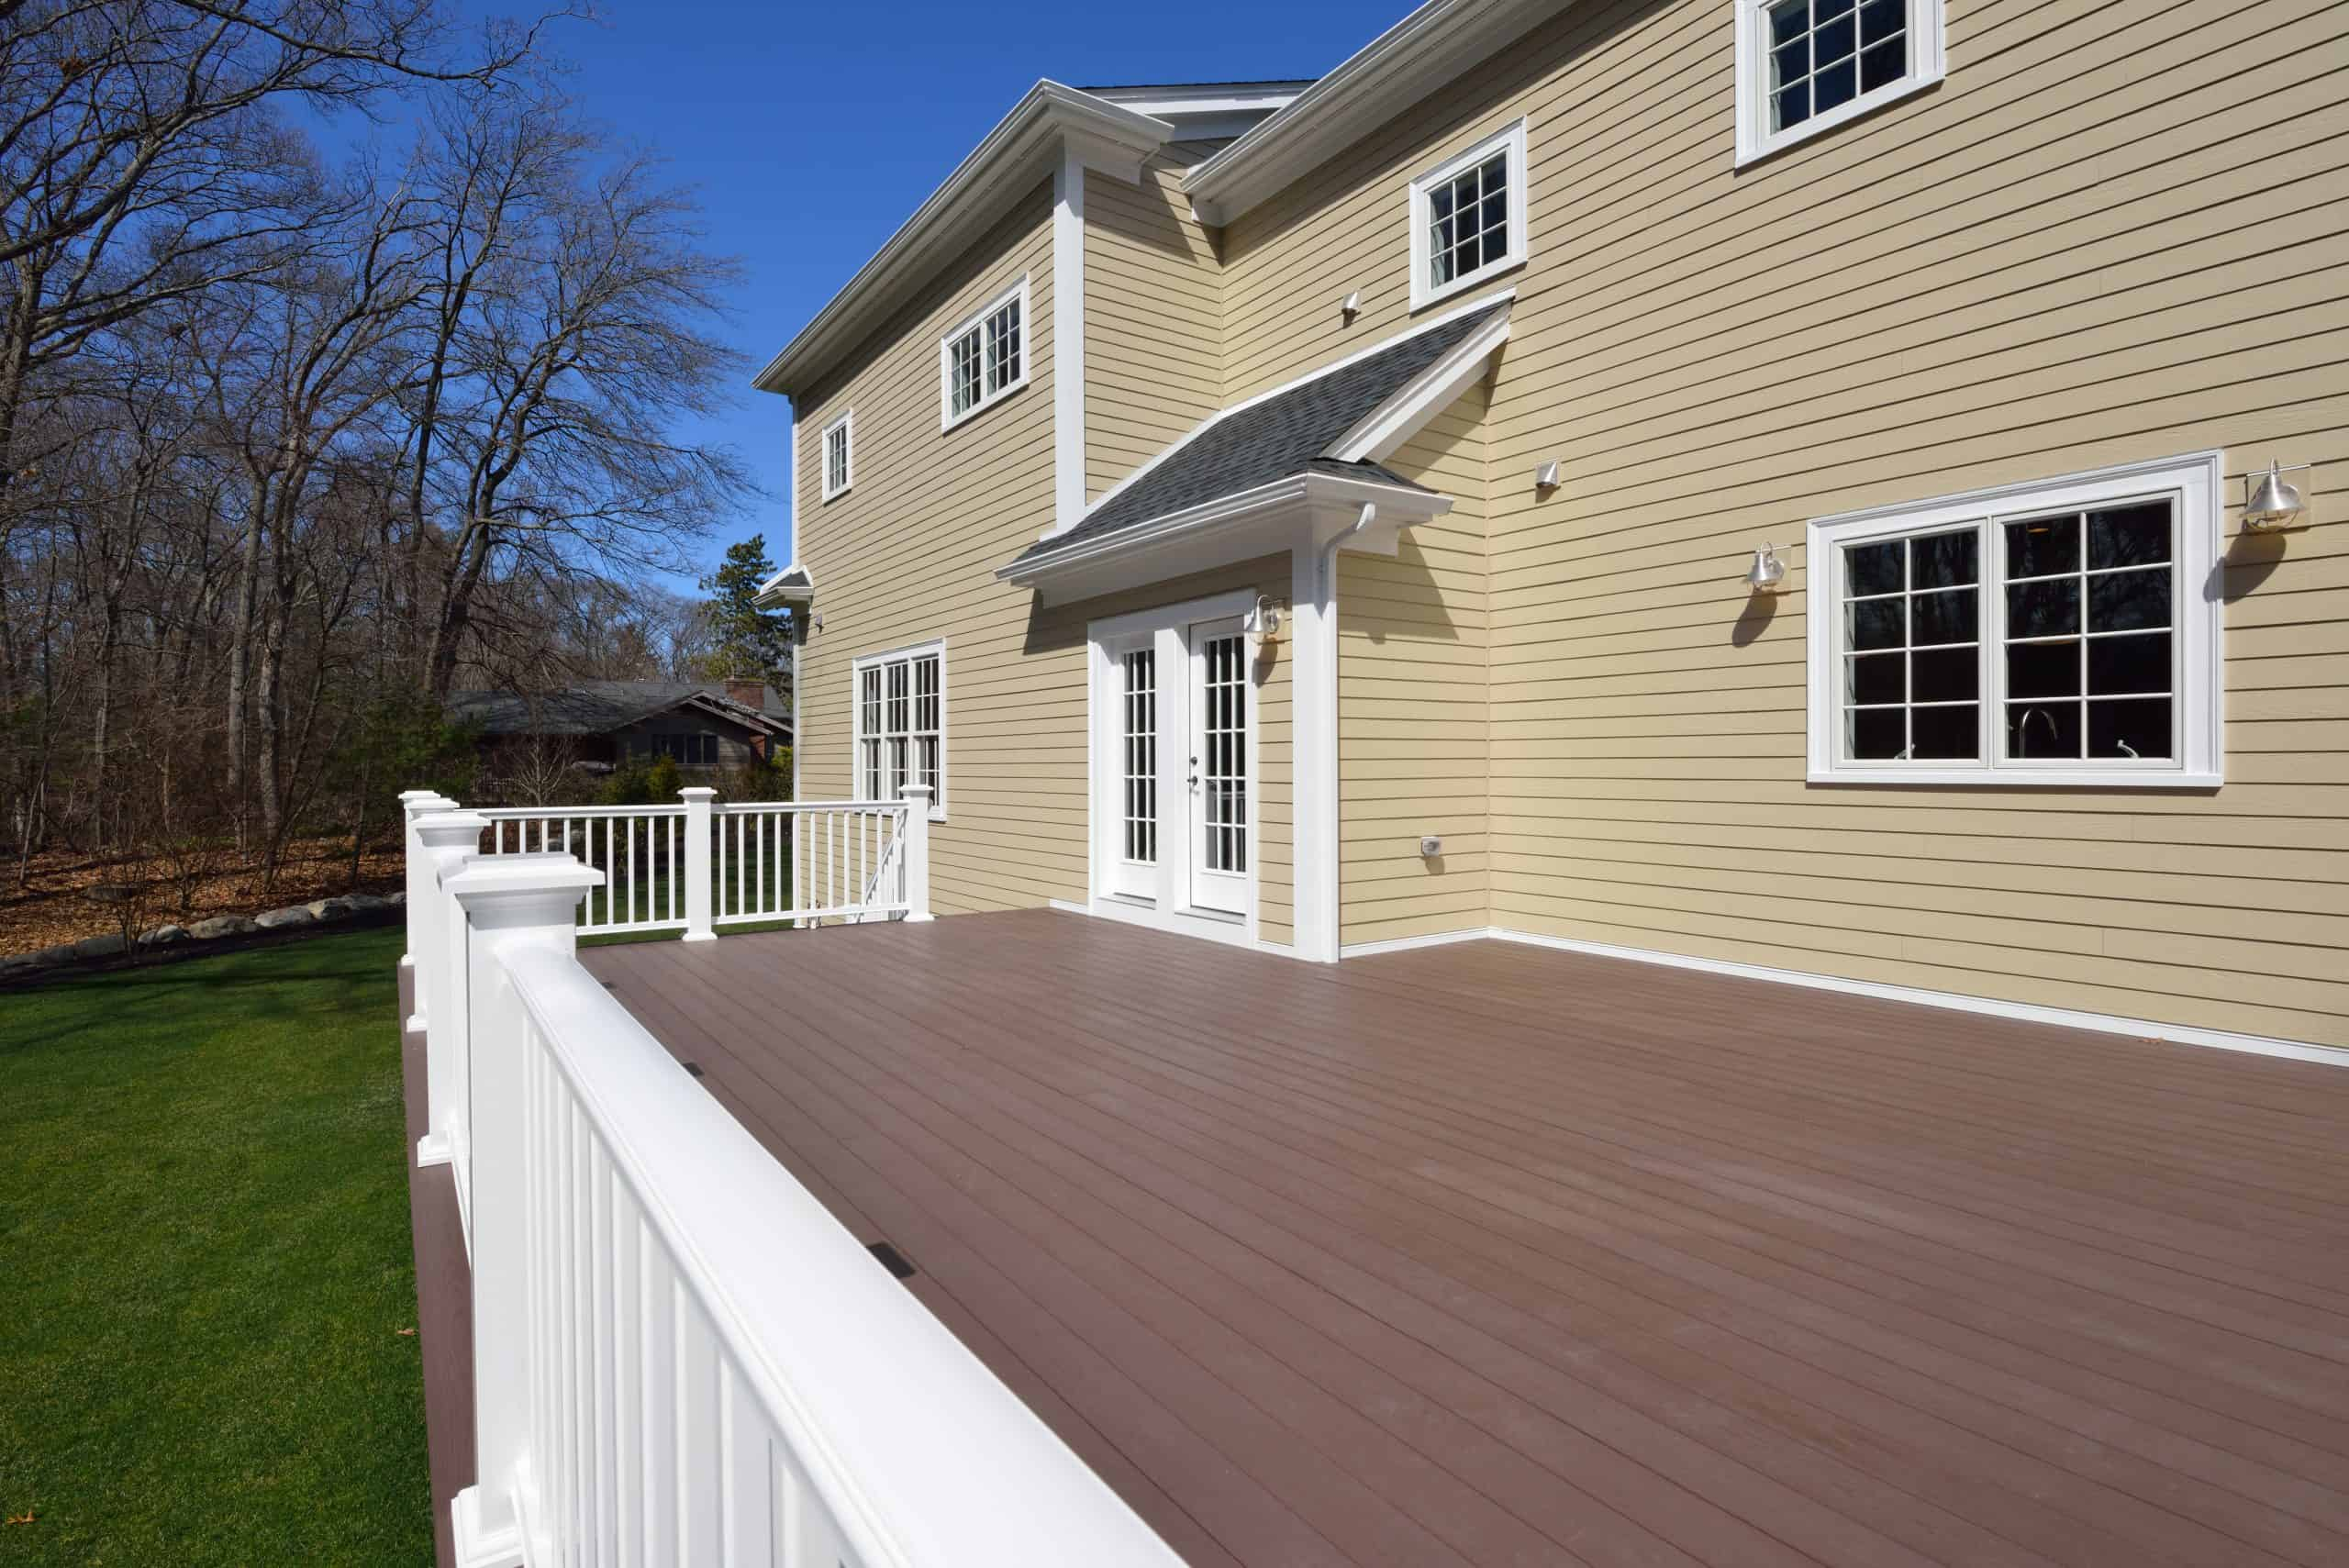 Large New Deck in House Backyard